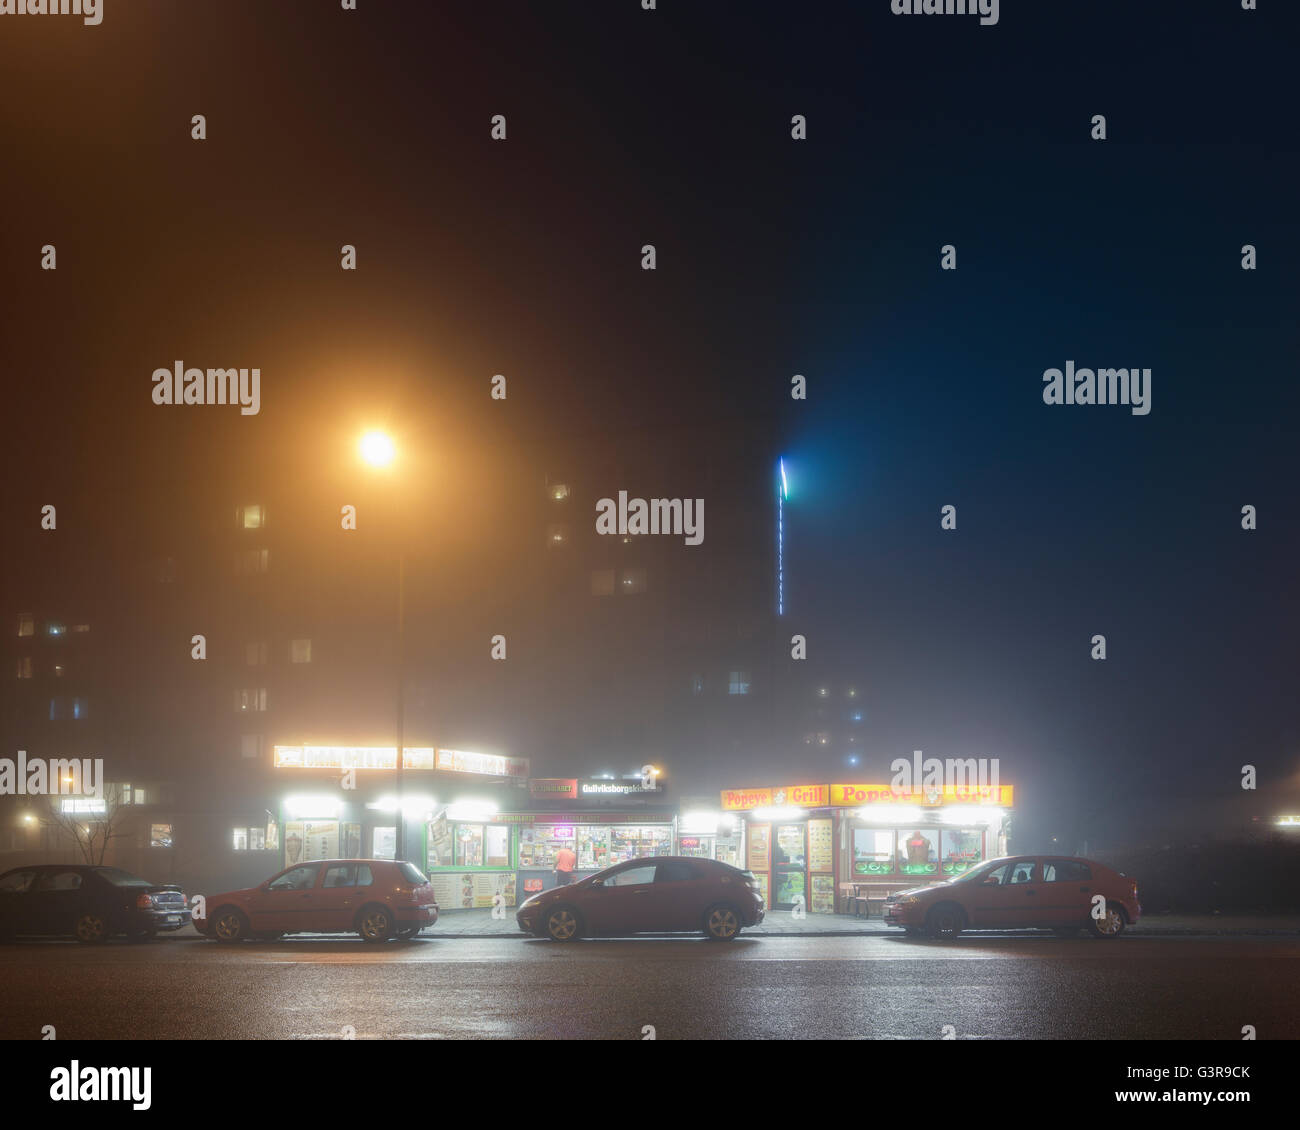 Sweden, Skane, Malmo, Gullviksborg, Cars parked by small stores at night - Stock Image